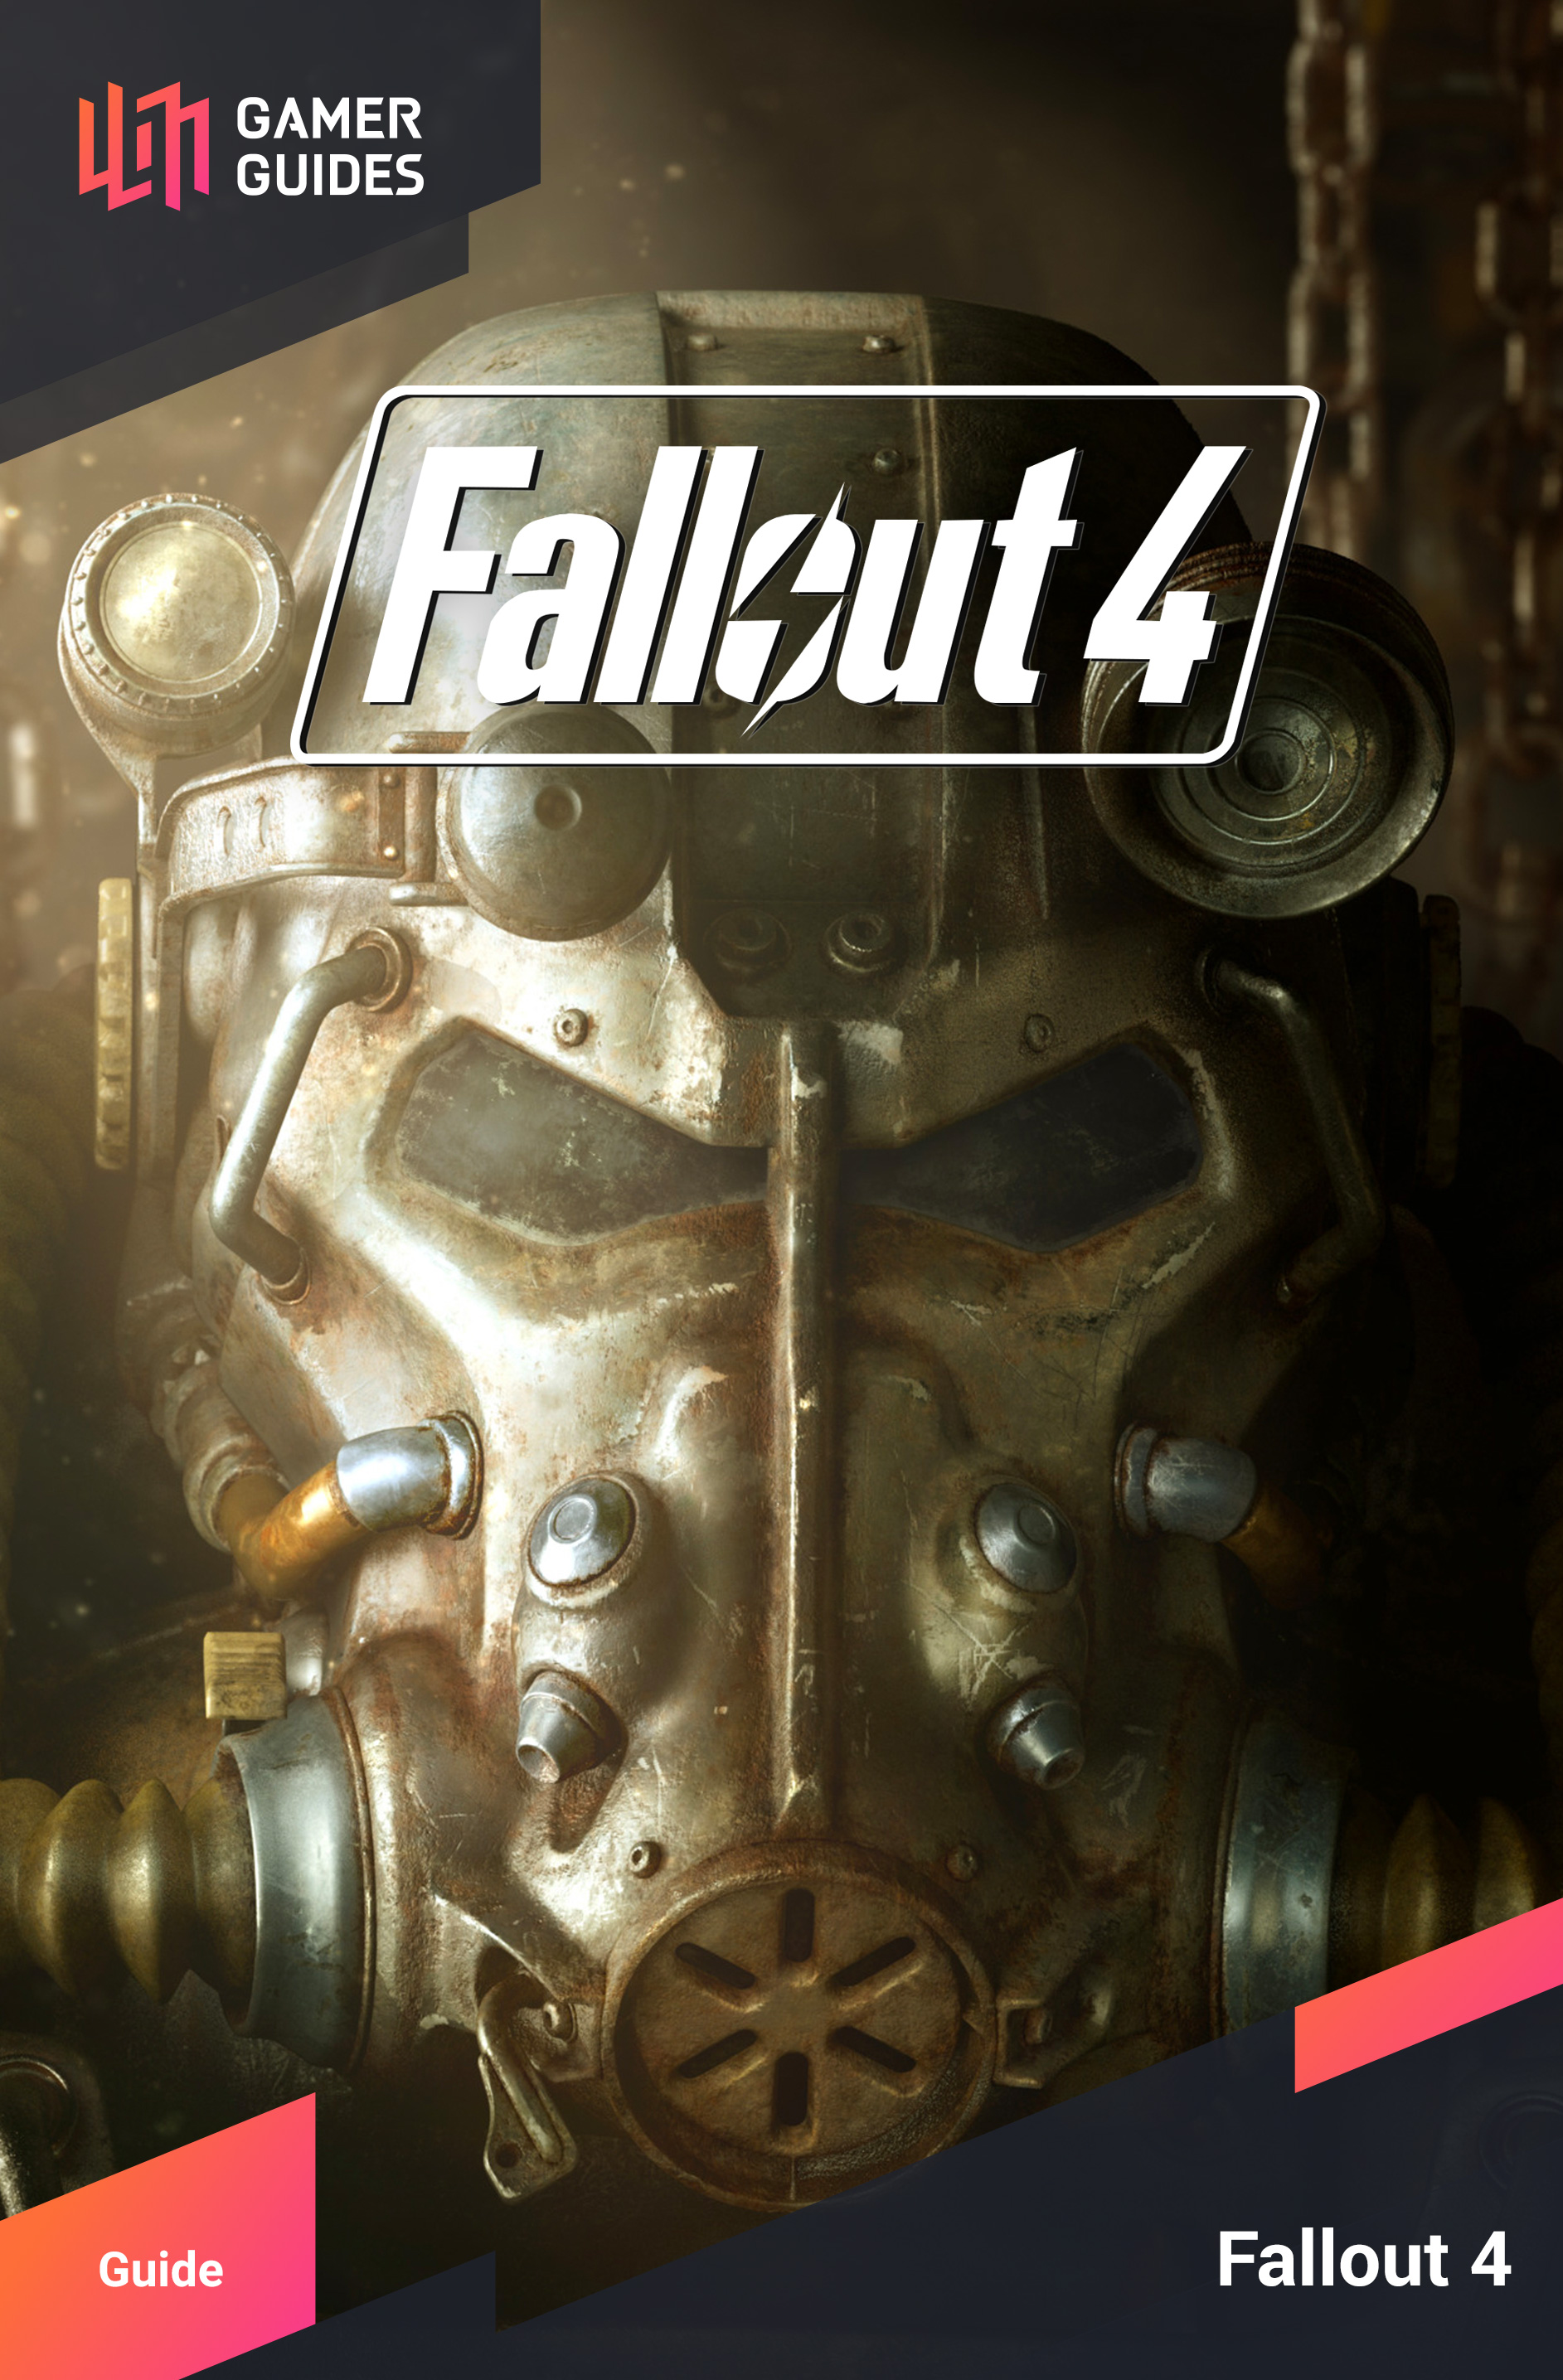 Fallout 4 | Gamer Guides